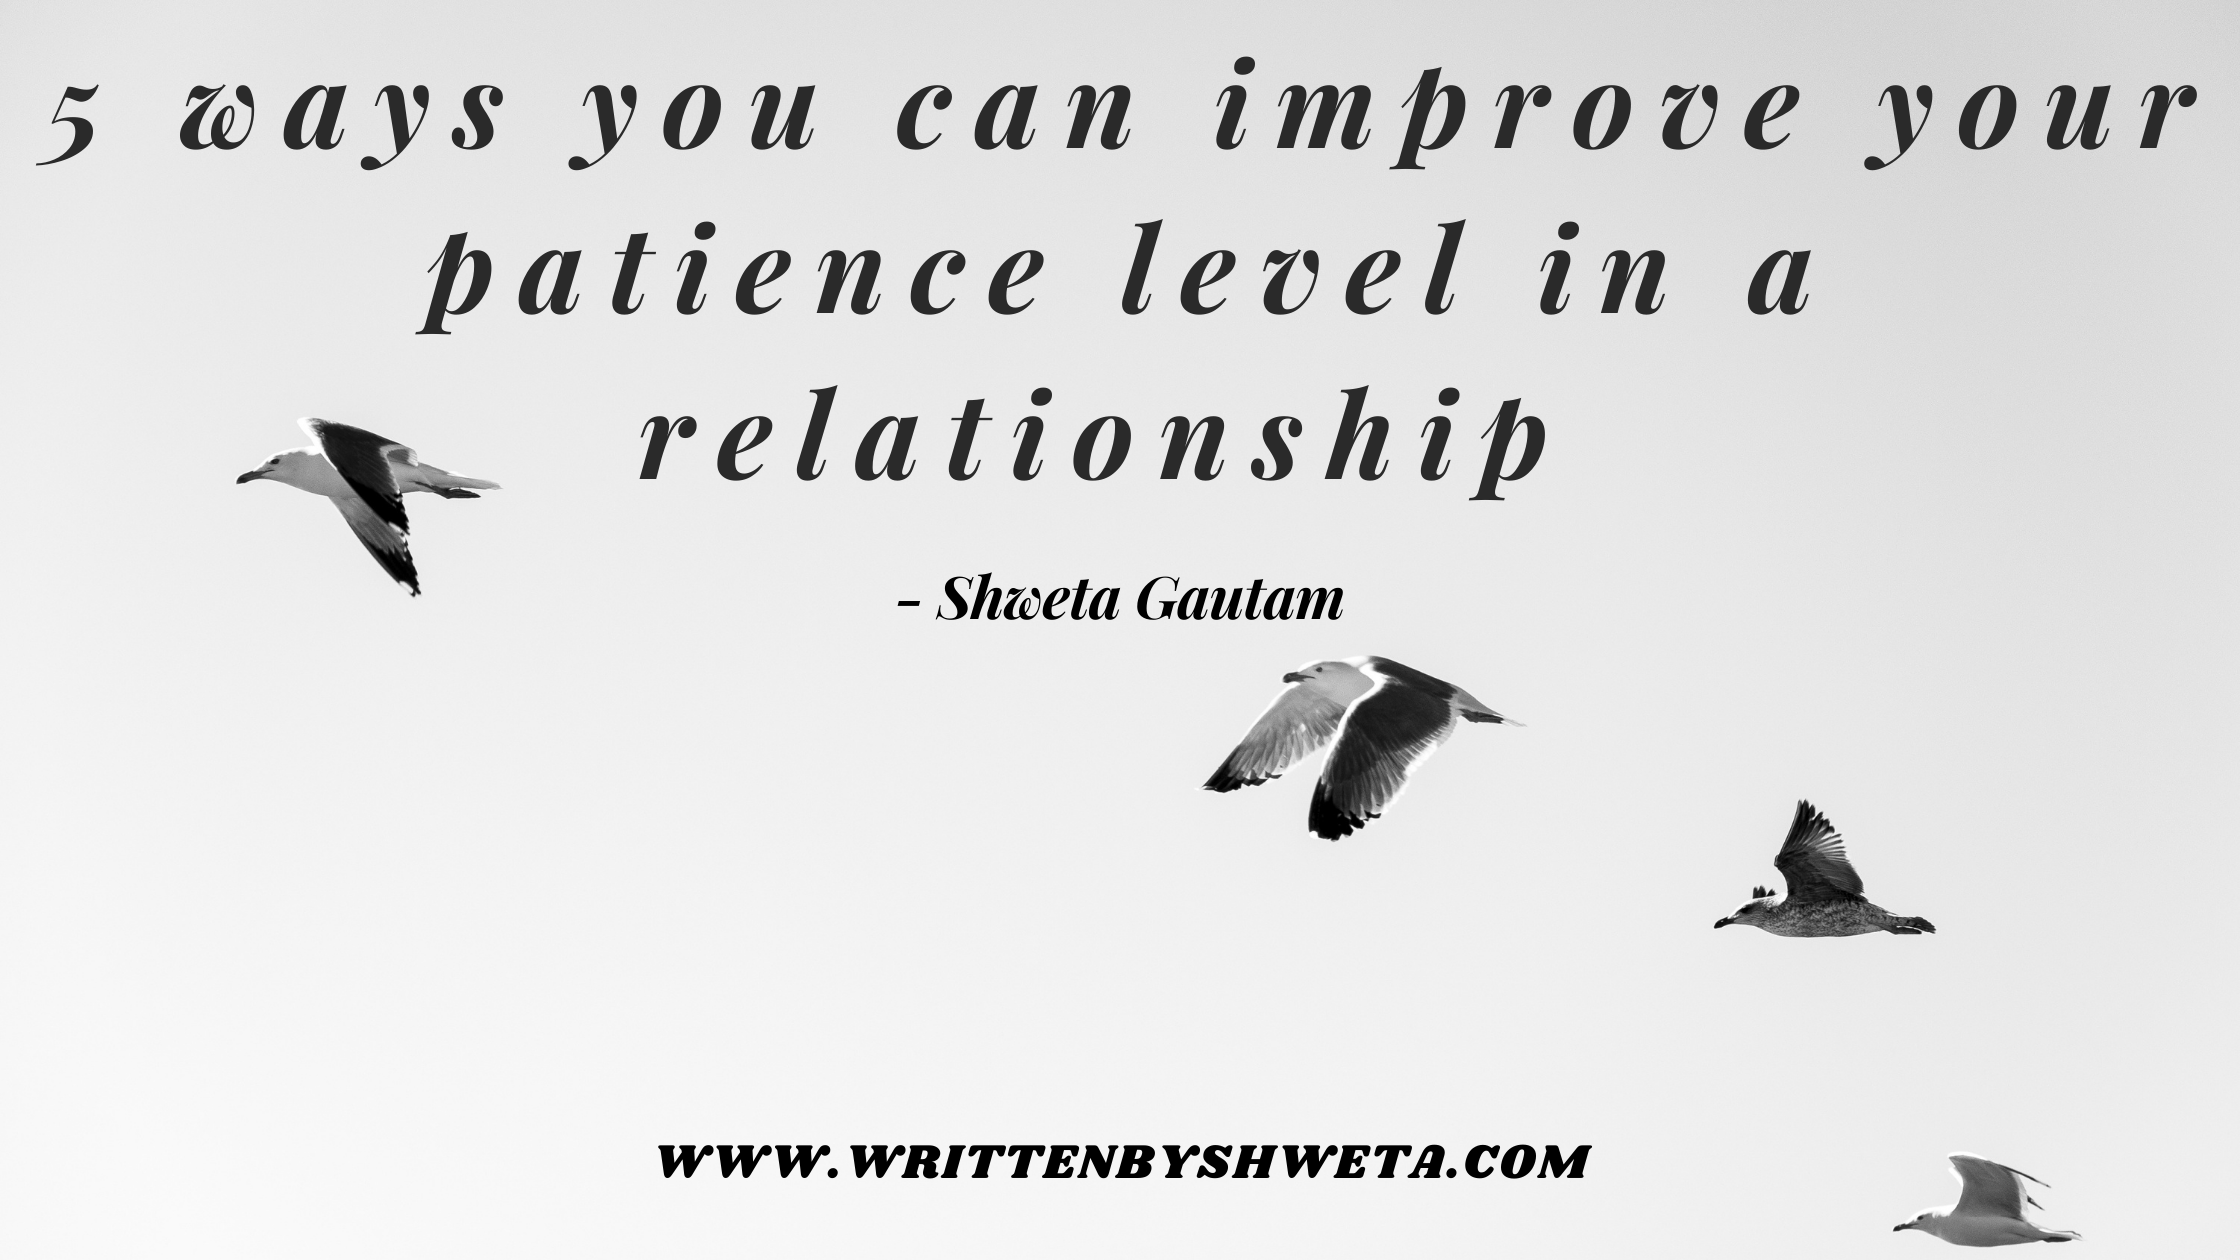 5 WAYS YOU CAN IMPROVE YOUR PATIENCE LEVEL IN A RELATIONSHIP